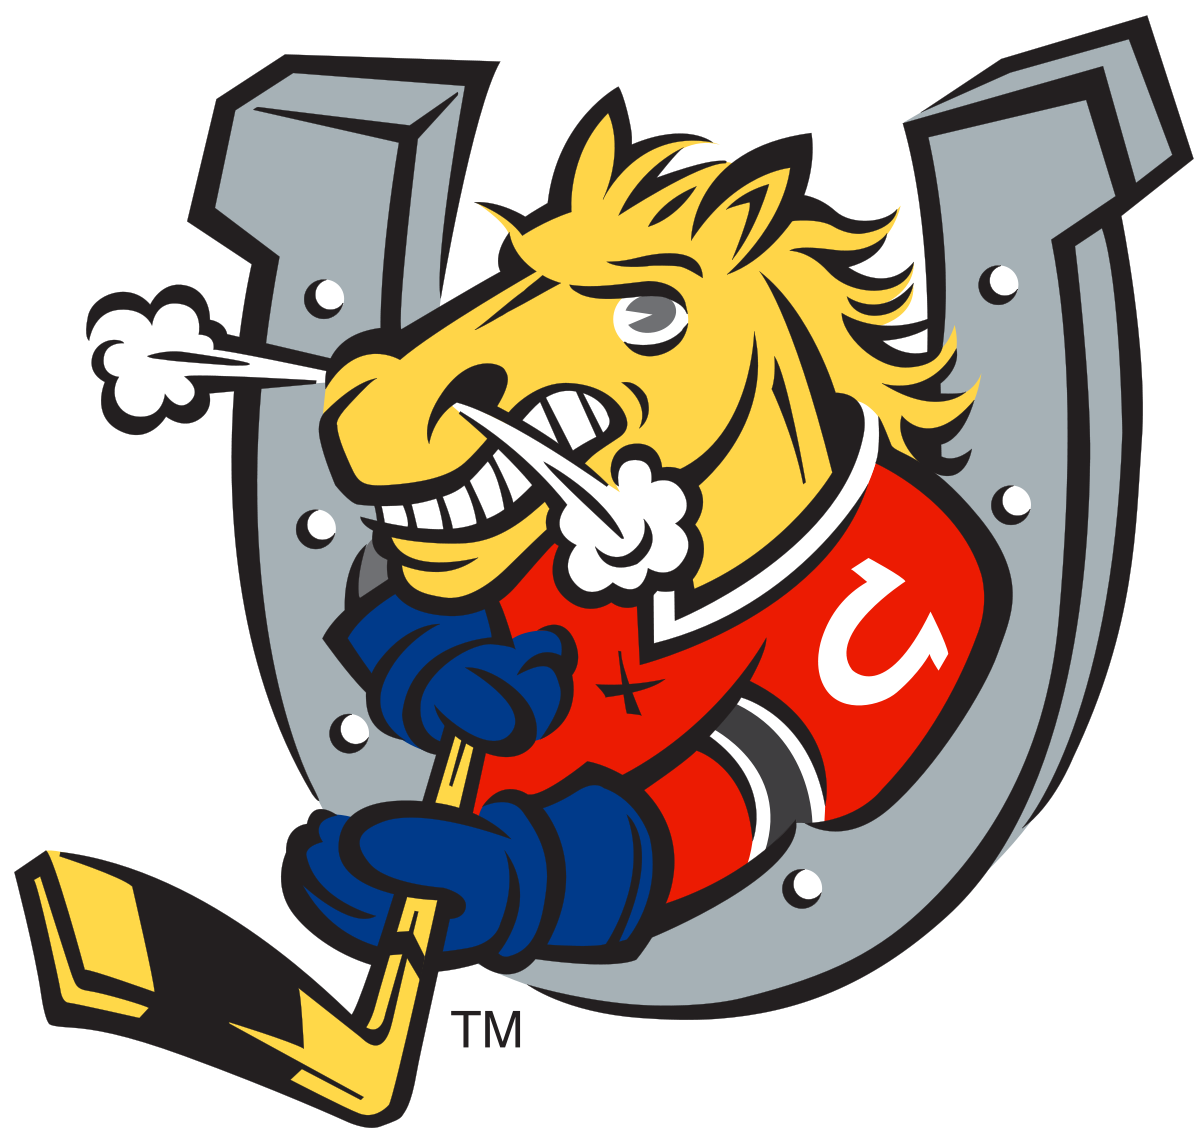 Pepe vector april fools. Barrie colts wikipedia